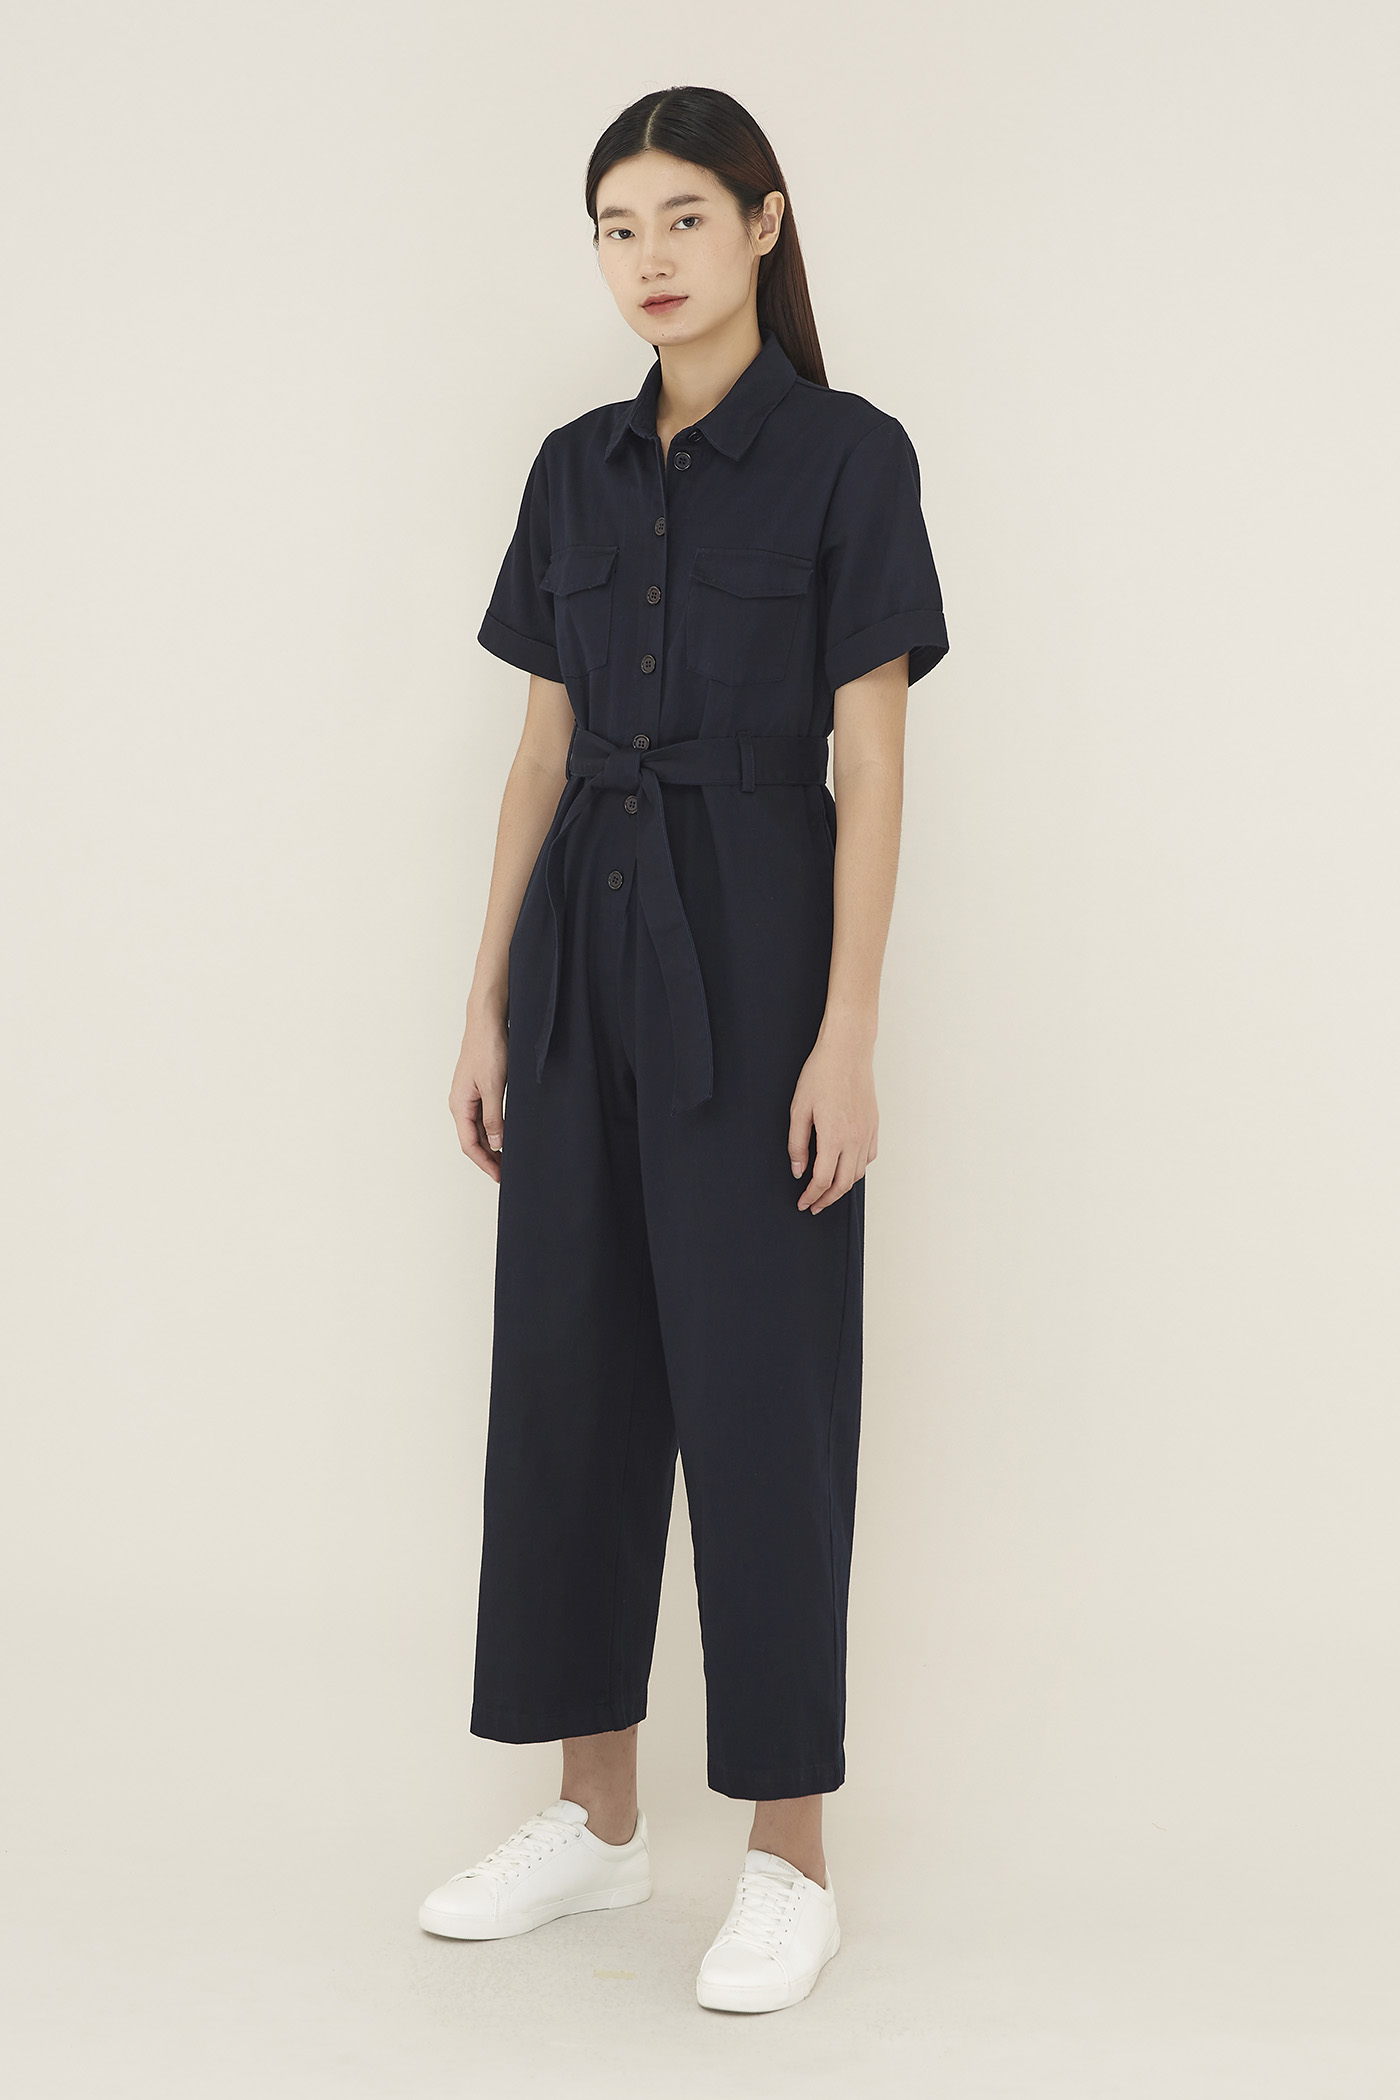 Claury Collared Jumpsuit